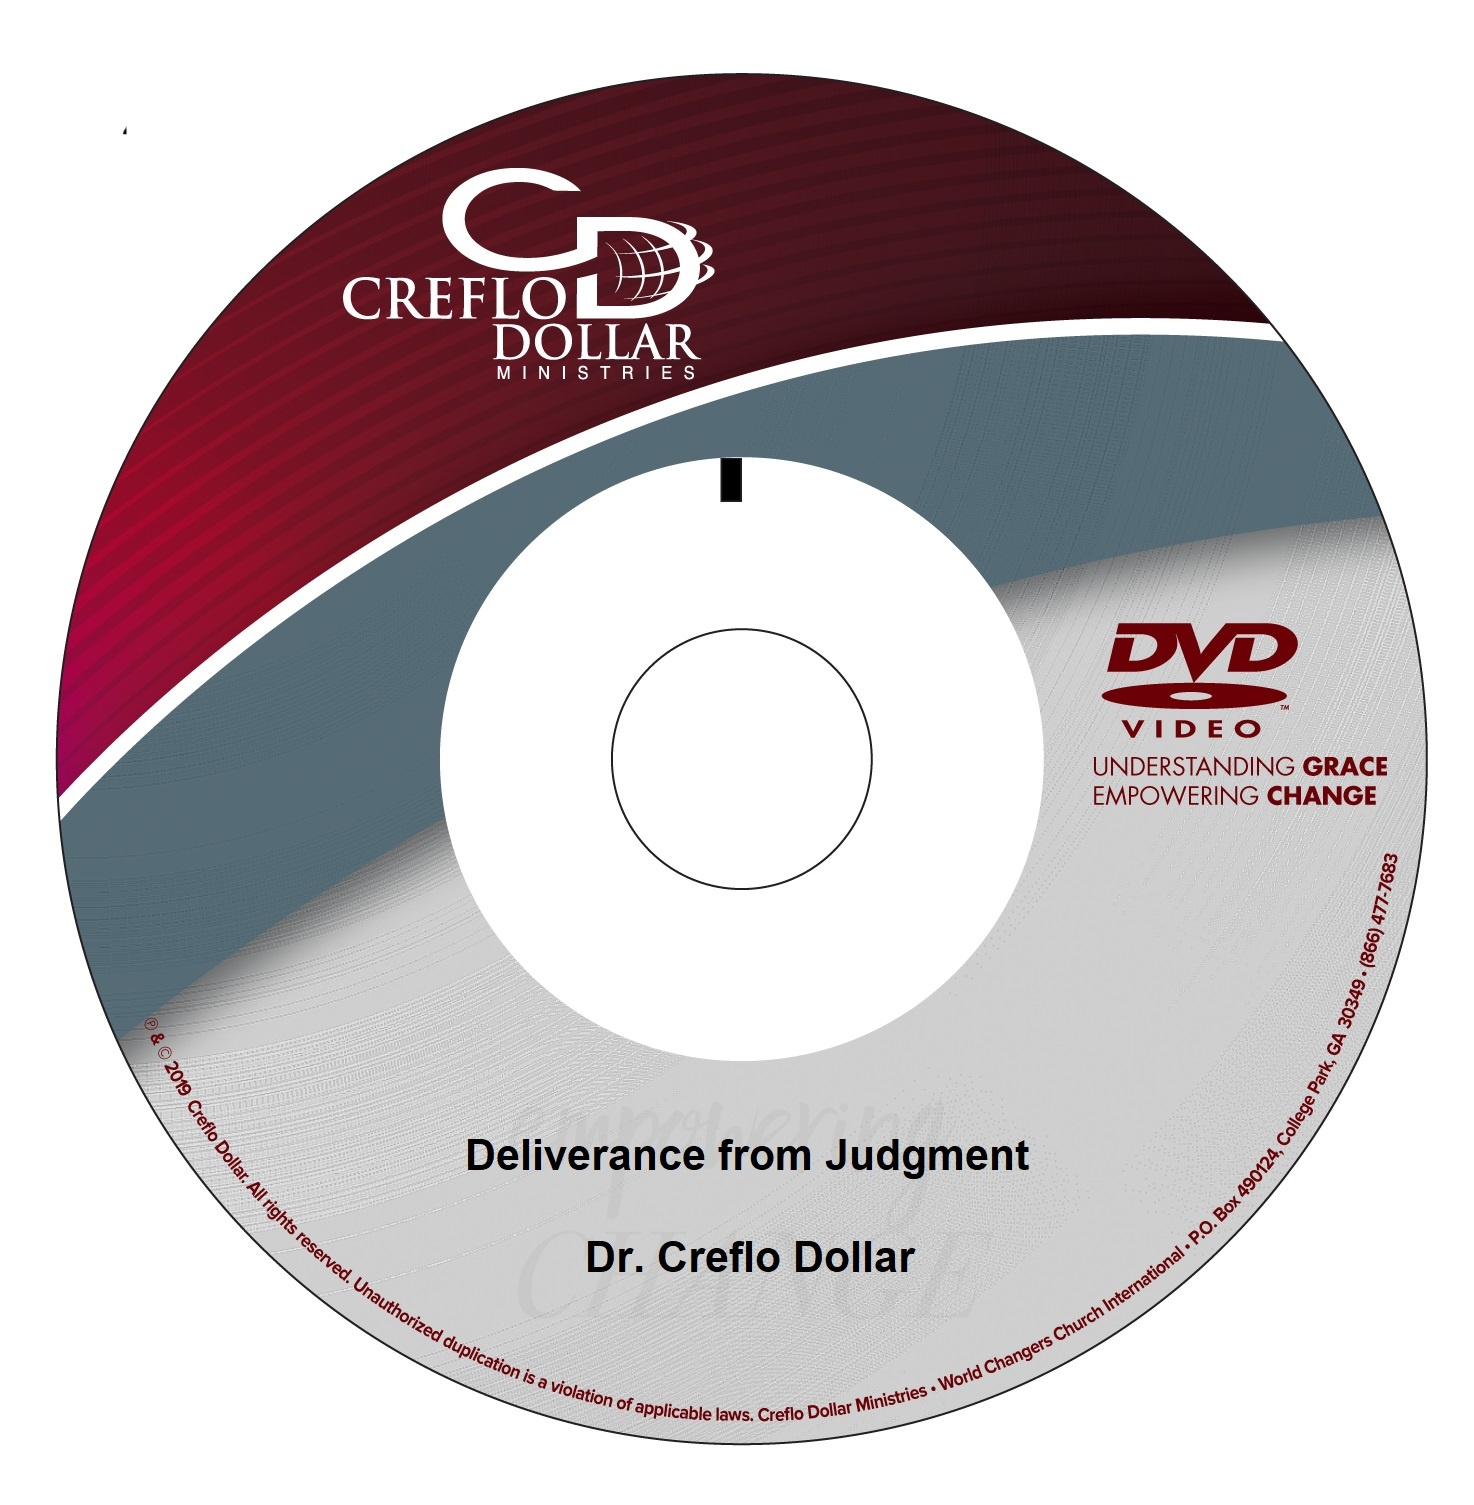 Deliverance from Judgment - Single Message